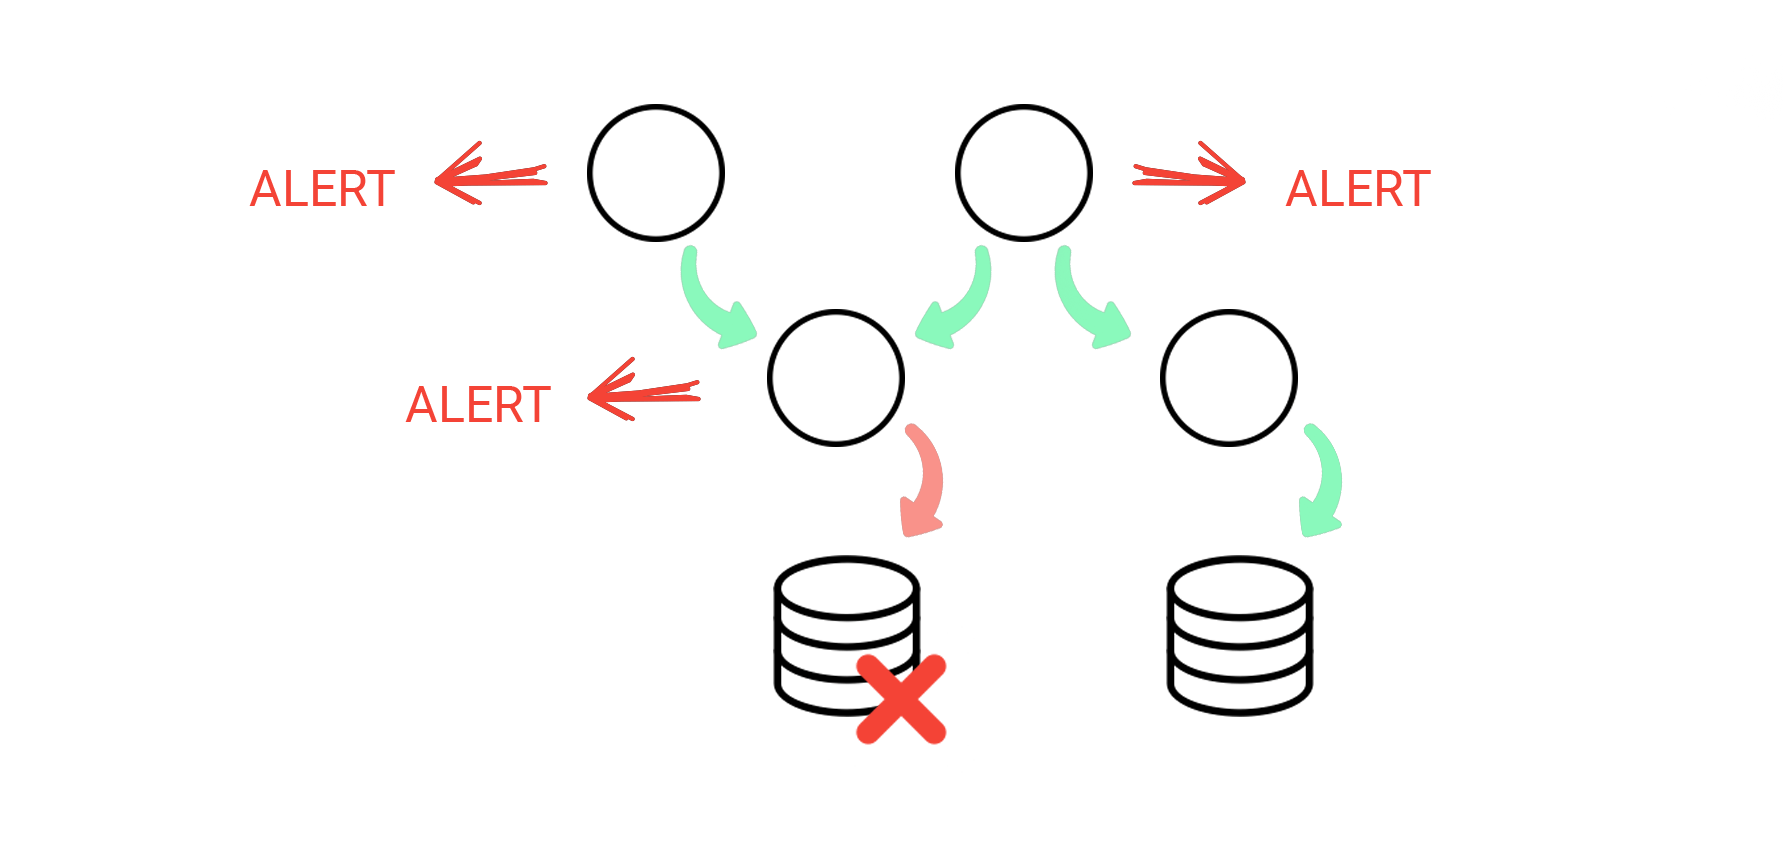 Monitoring a Microservices Architecture can cause trouble with Alerting